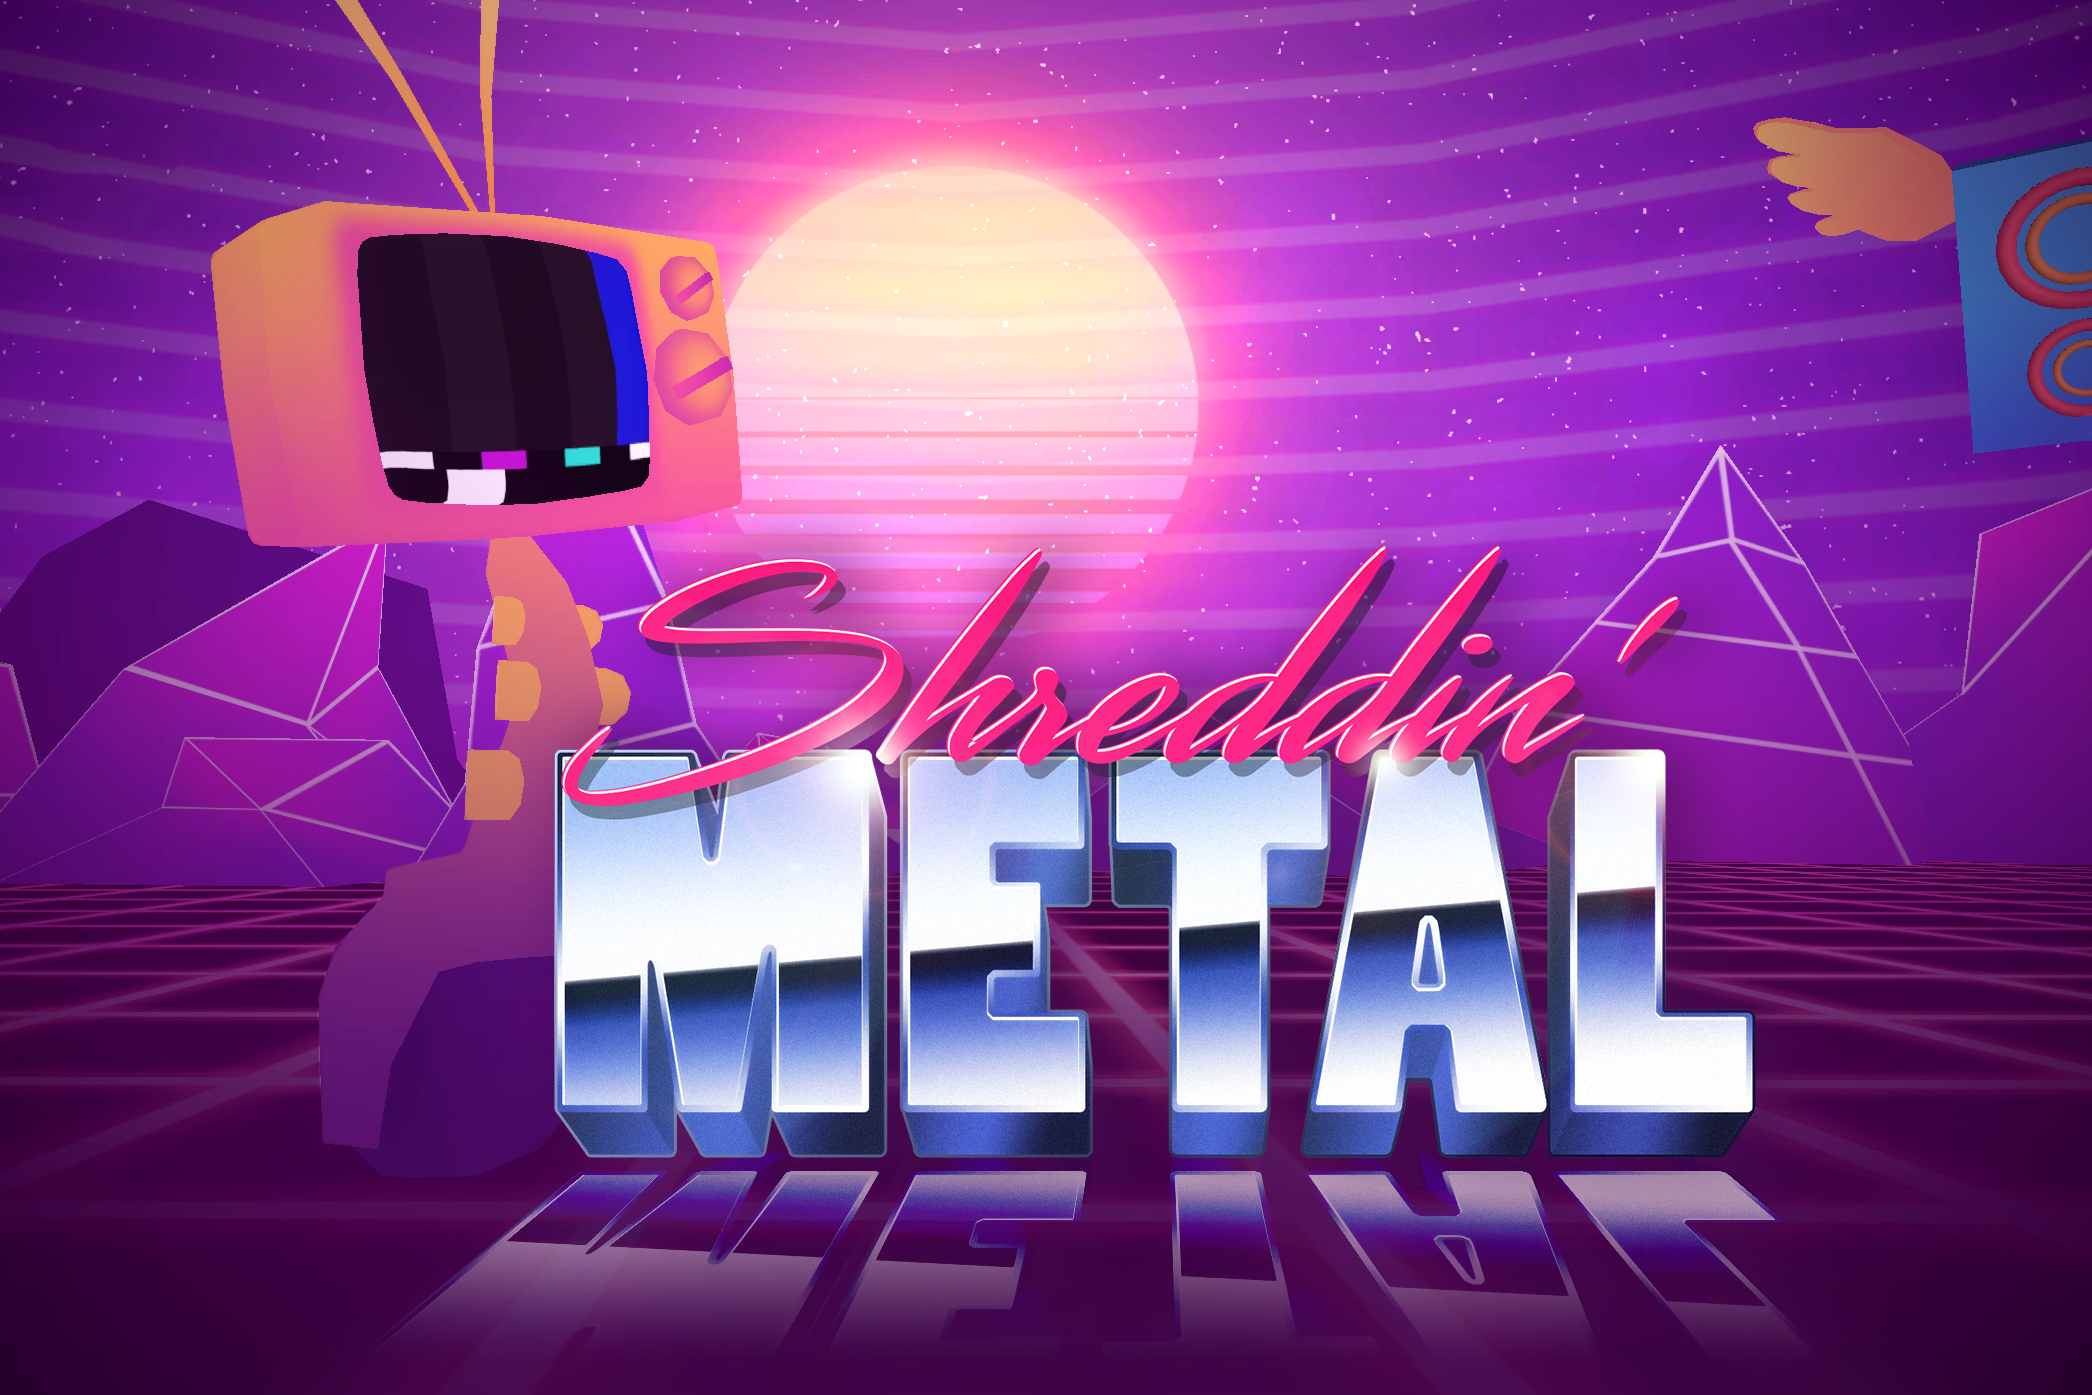 Shreddin' Metal    - November 2017 -   Typing of the Dead meets Guitar Hero meets Vaporwave meets VR!  Made during the weekend VR Austin Jam 2017. I worked on the robot character art, animation and vfx.